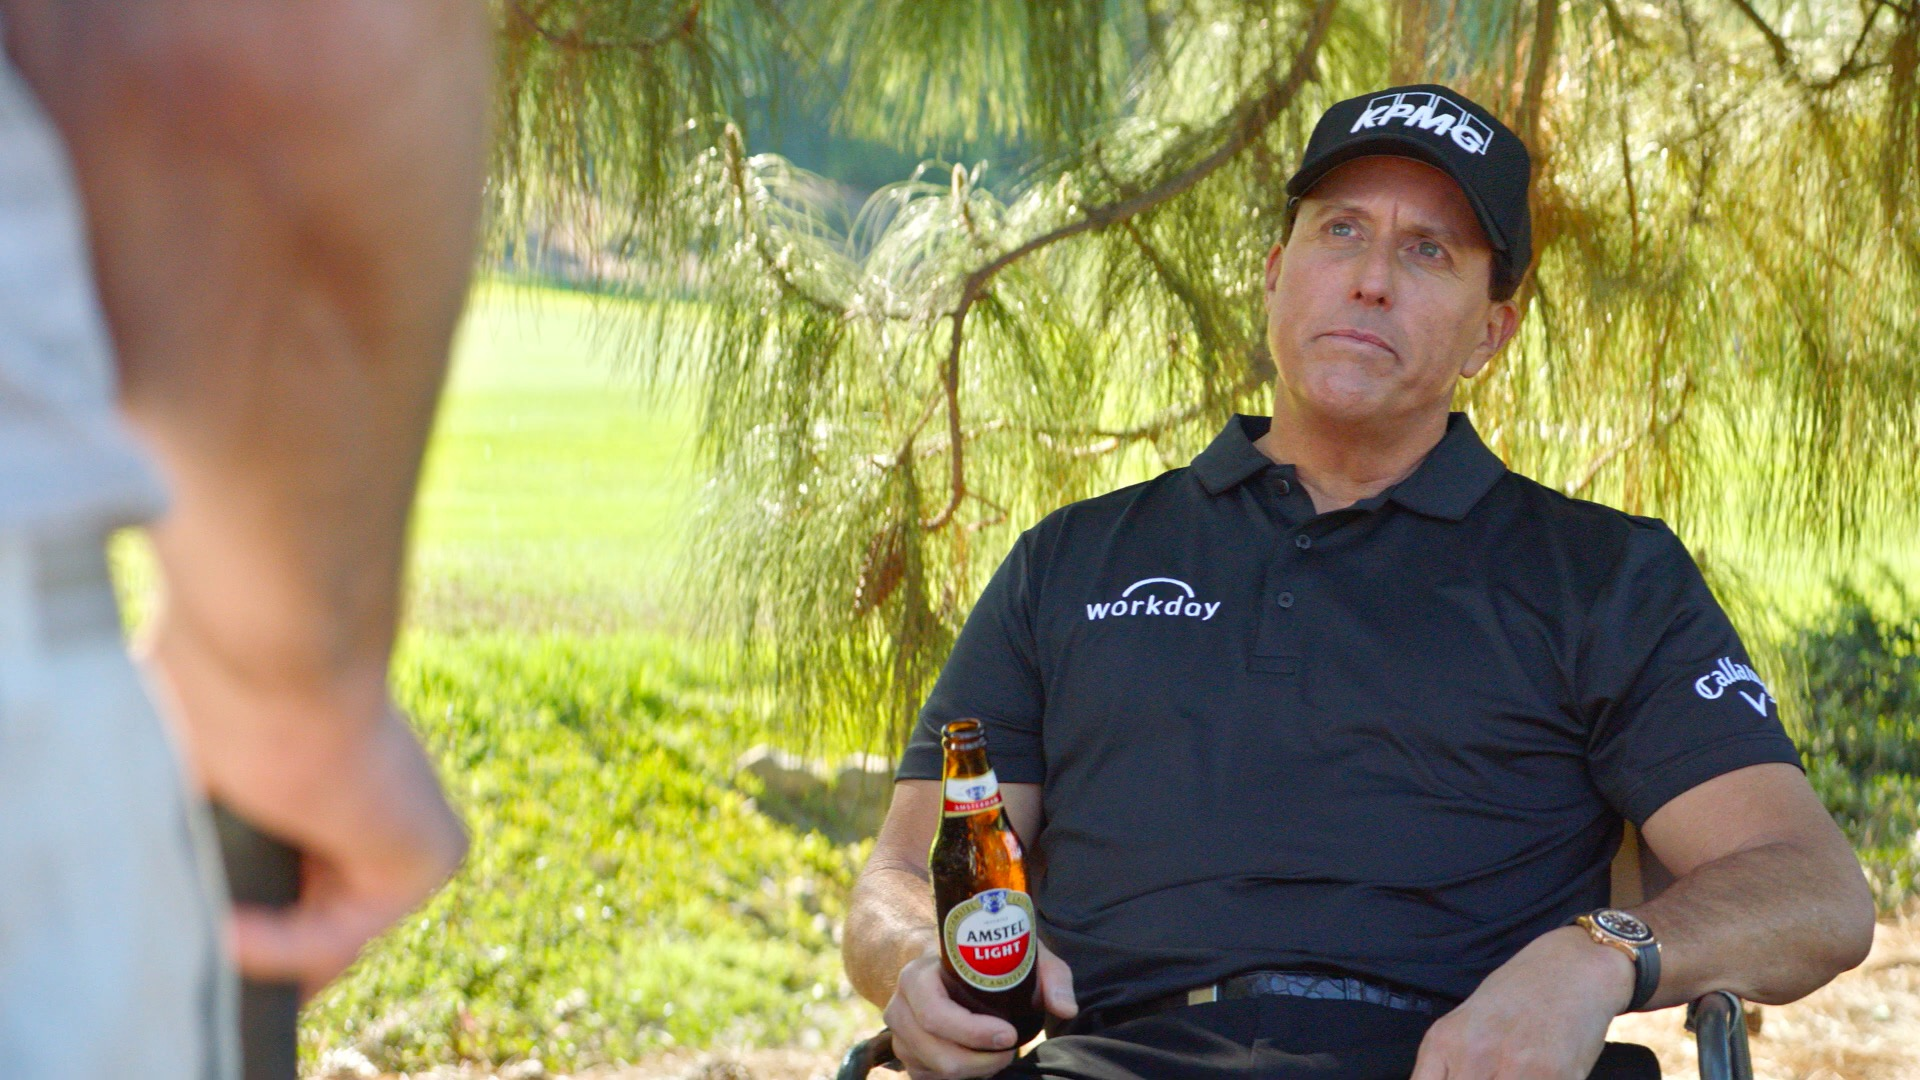 Phil Mickelson Tees Up Friendship Advice in Ads for Amstel Light | Muse by Clio